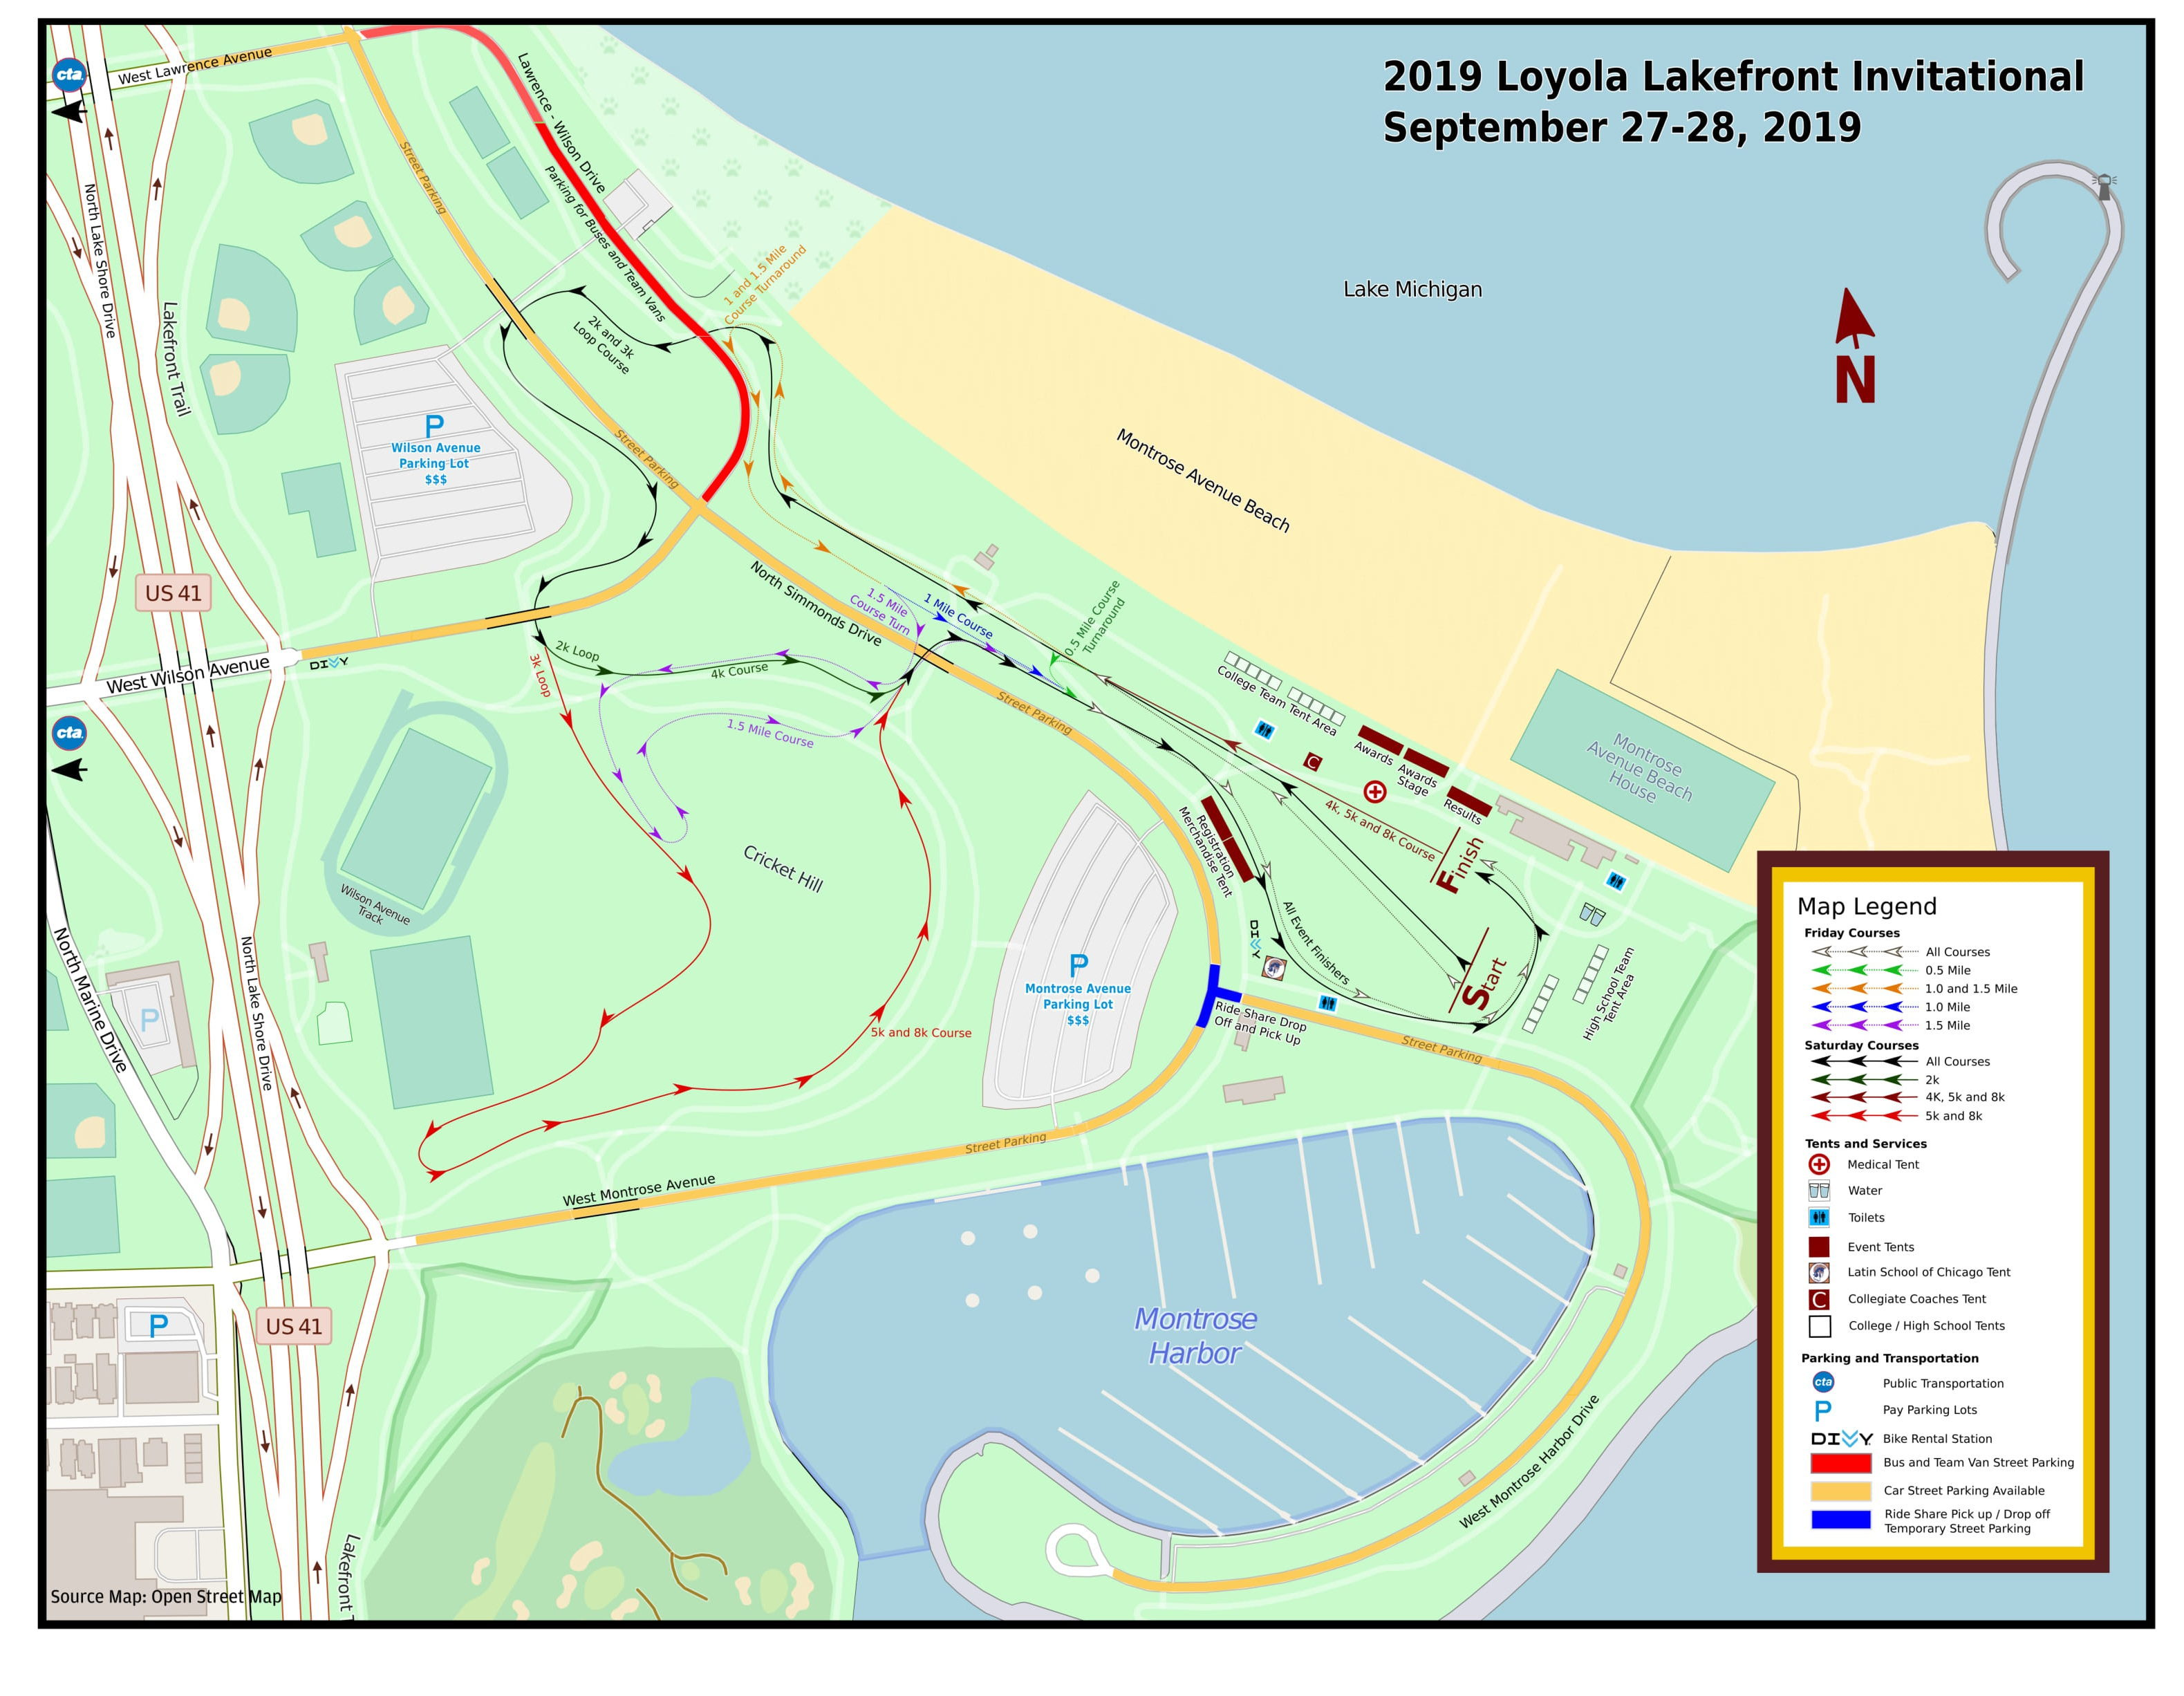 Event Map for the 2019 Loyola Lakefront Cross County Invitational